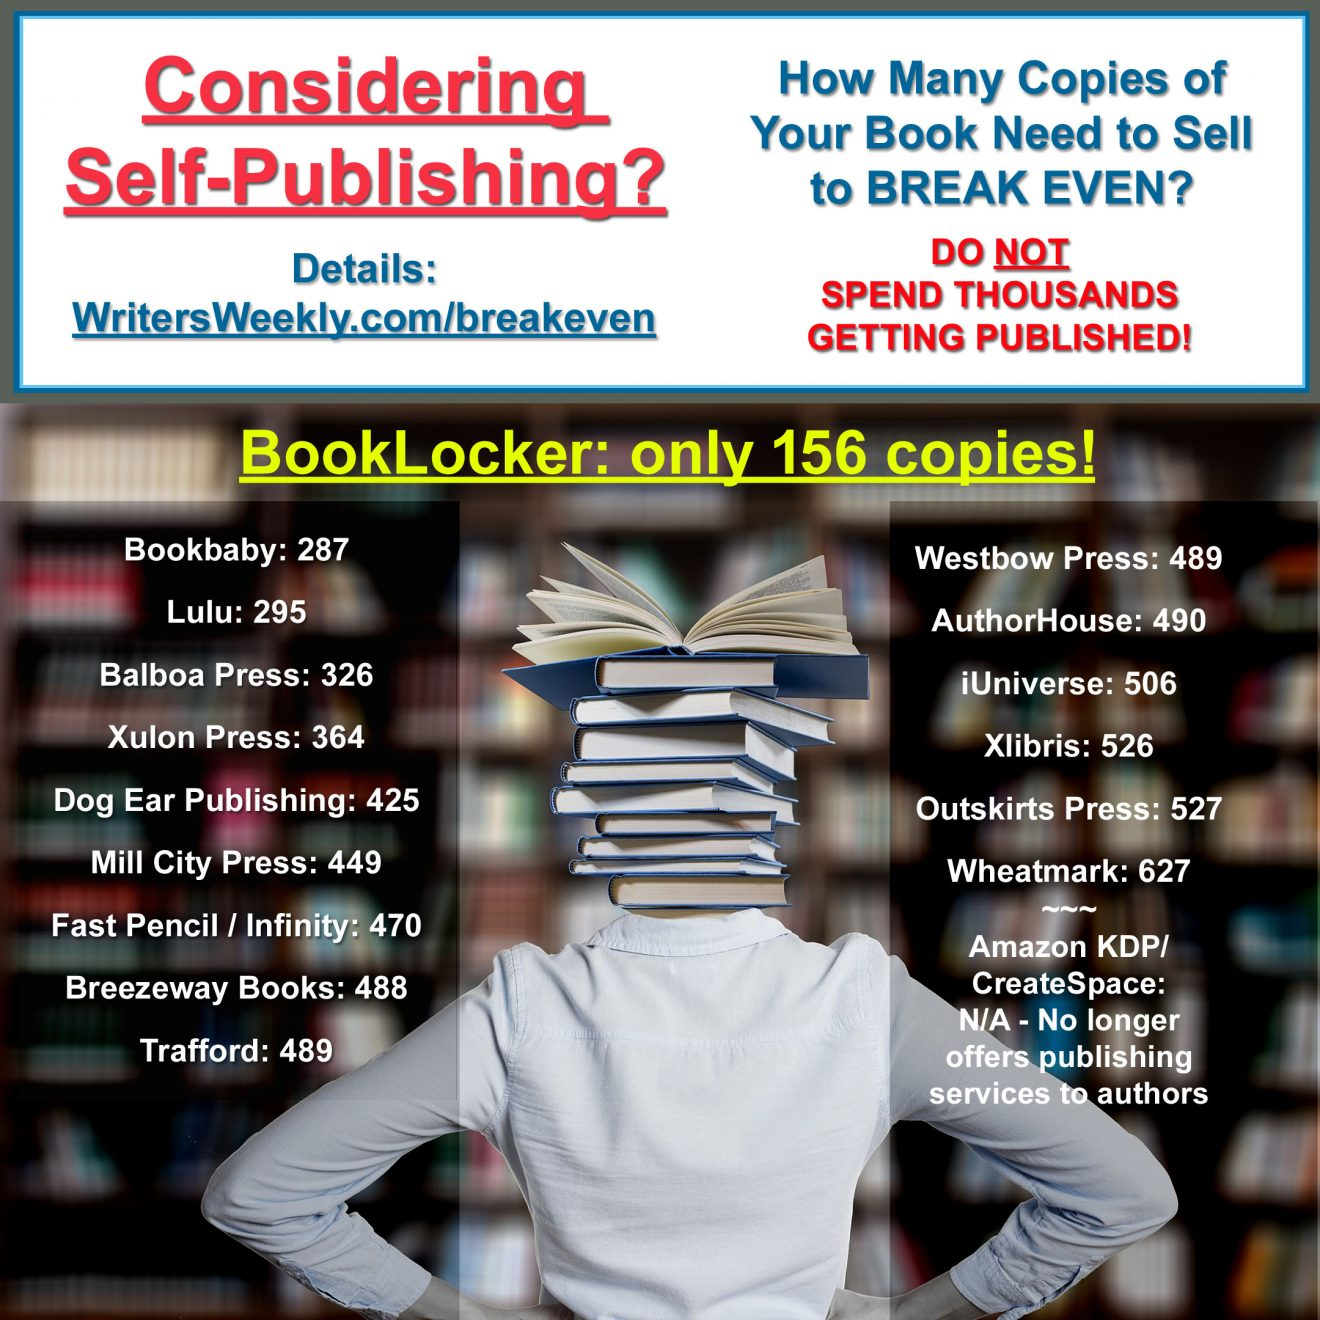 SELF-PUBLISHING IN 2020? – How Many Book Sales Needed to Recoup Your Investment?